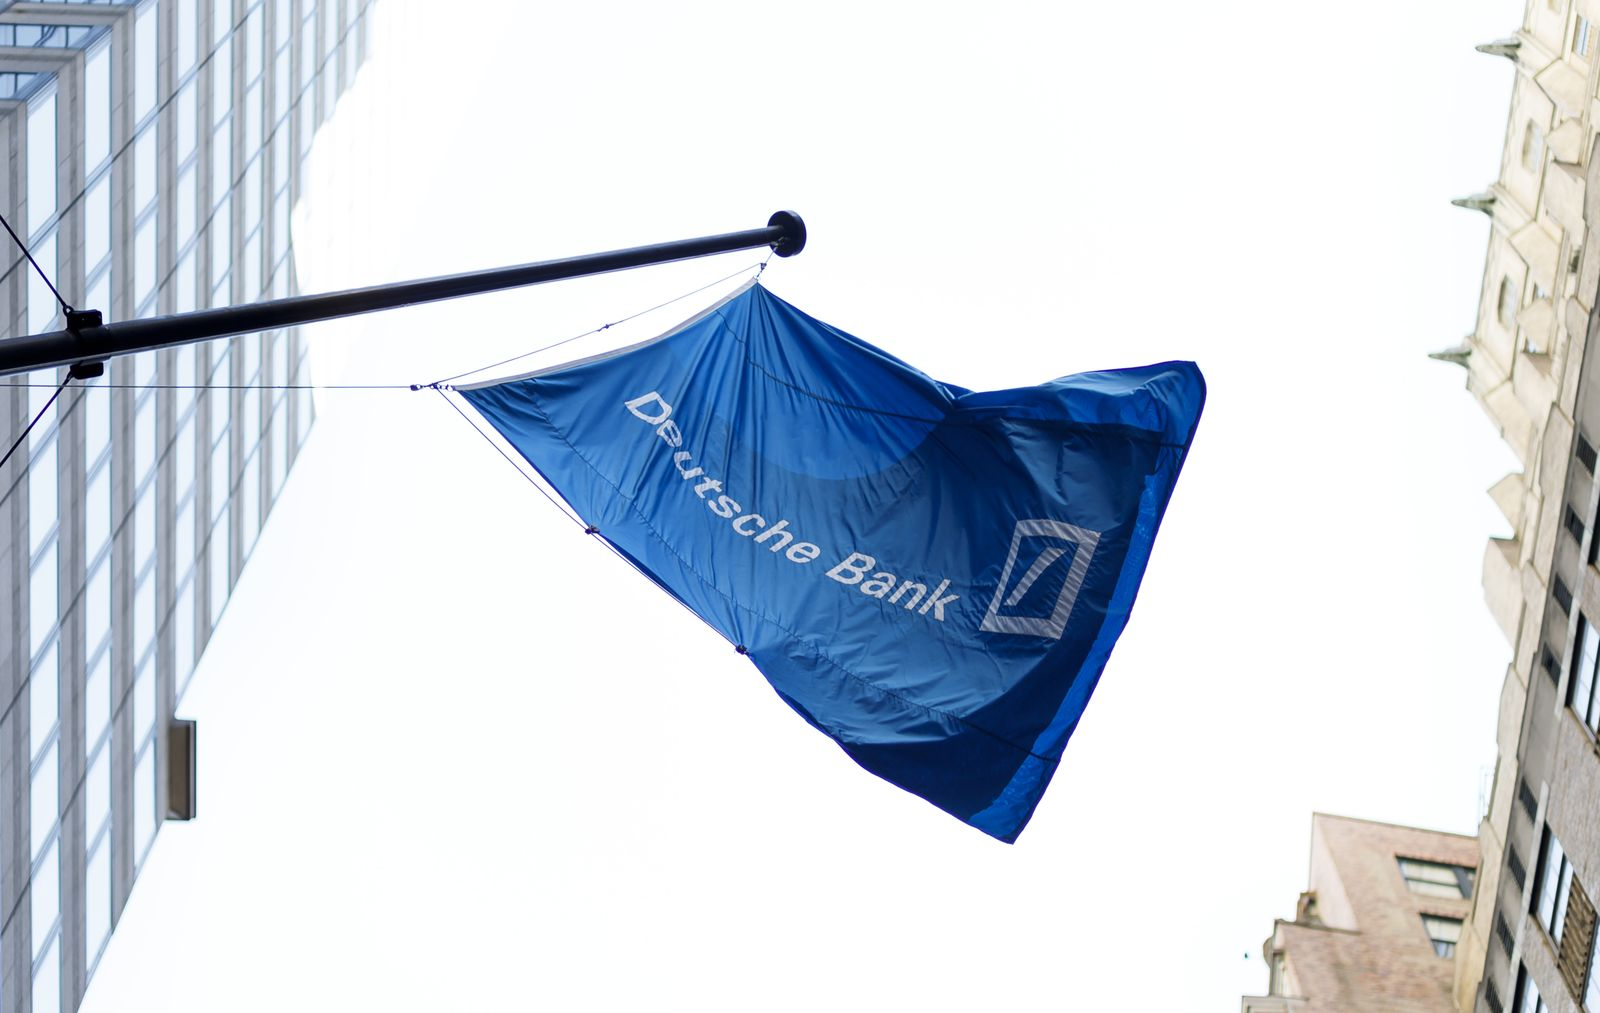 Federal Court Issues Ruling Related to Trump Financial Documents with Deutsche Bank, New York, USA - 03 Dec 2019